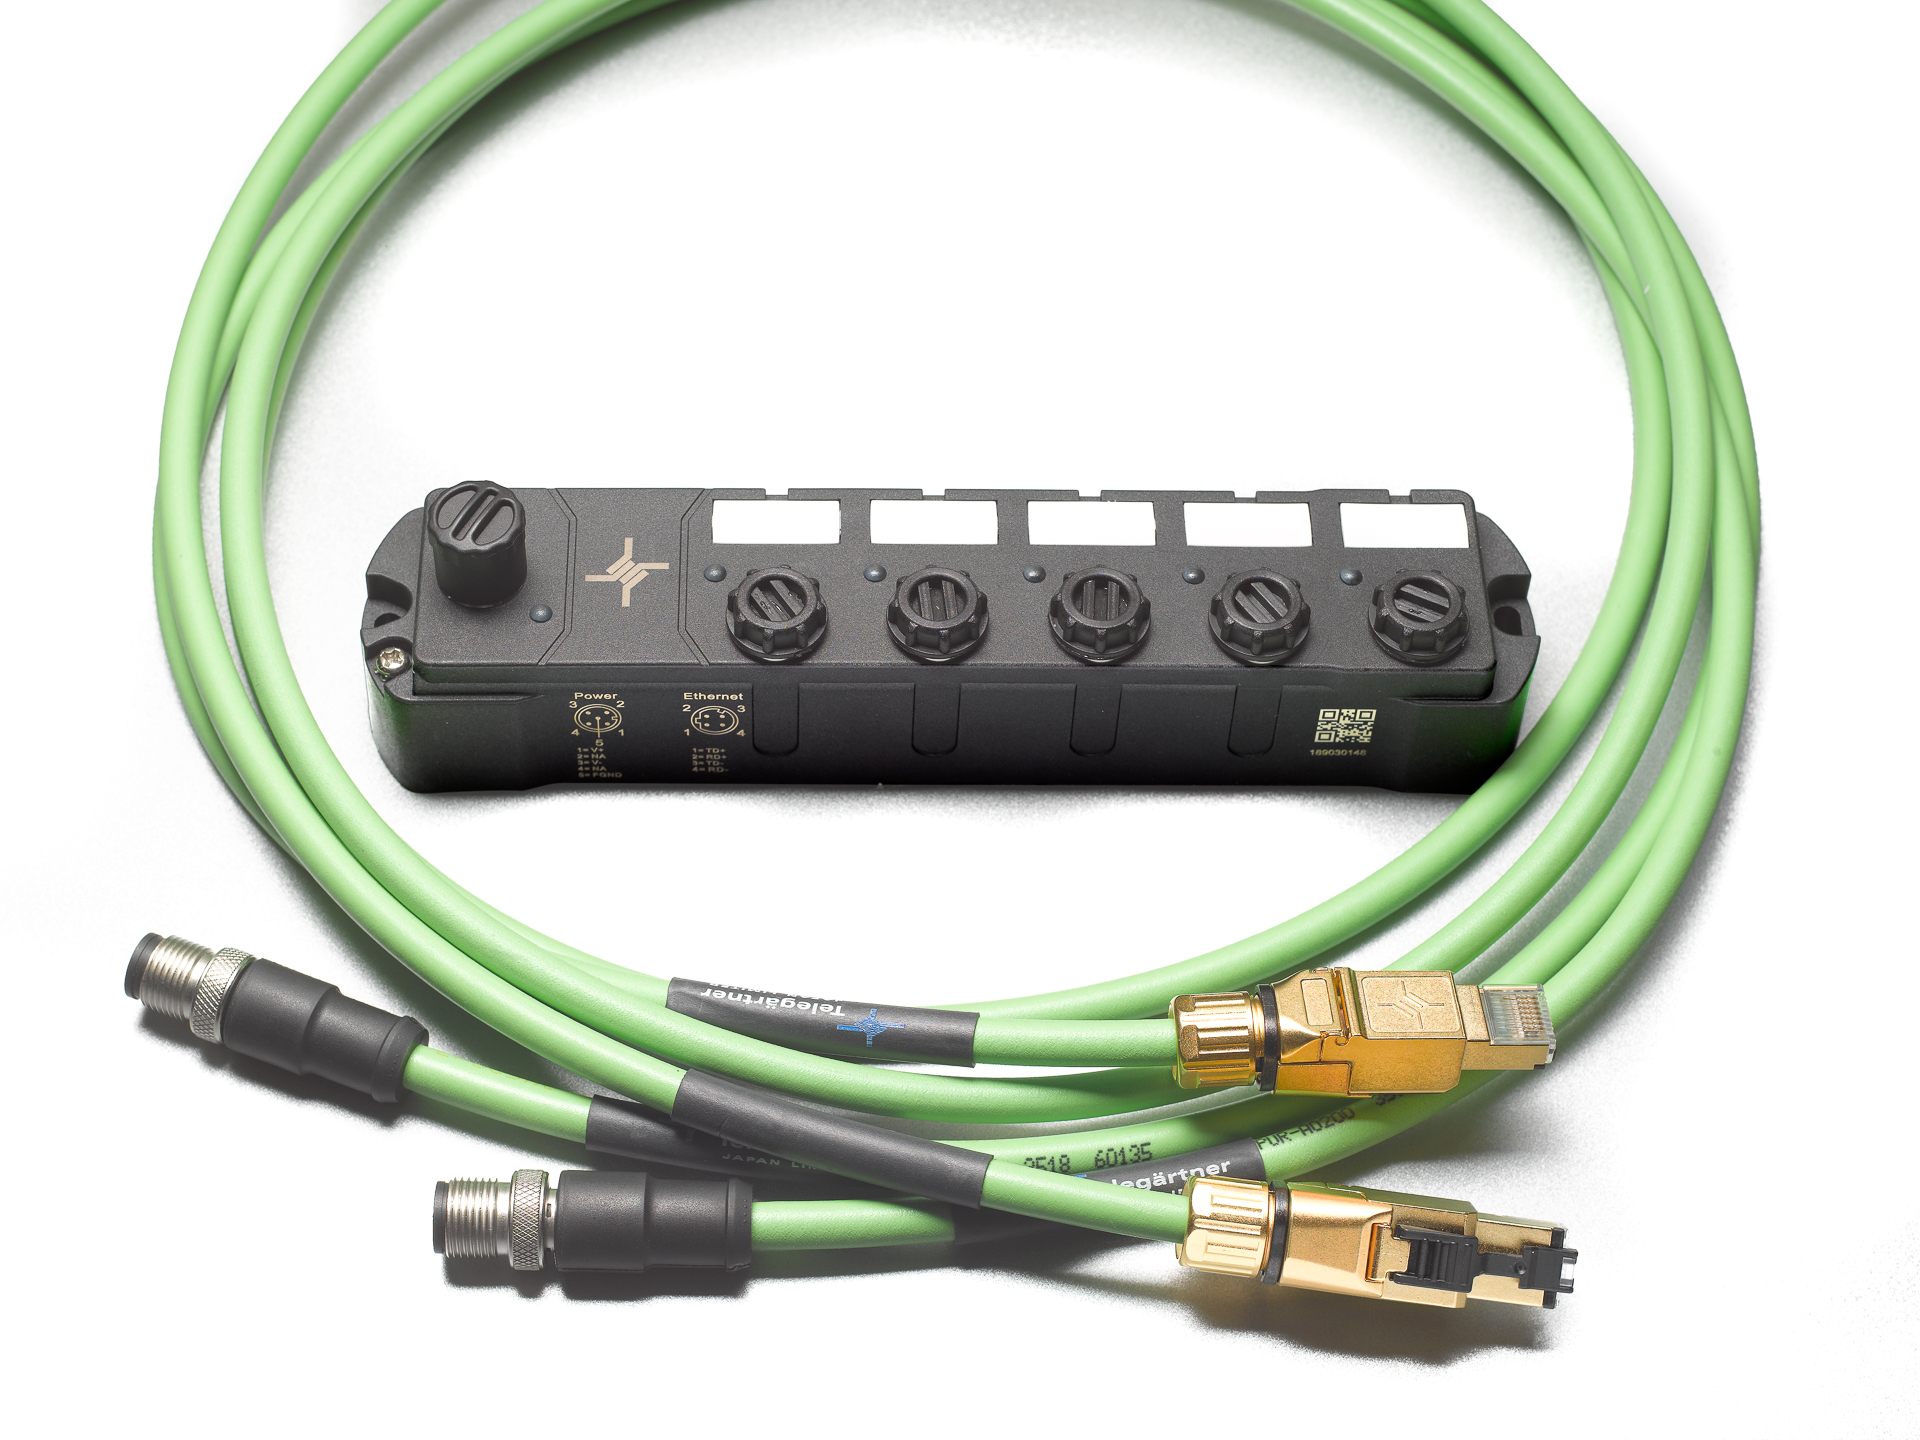 m12 magic network switch for hi-end audio